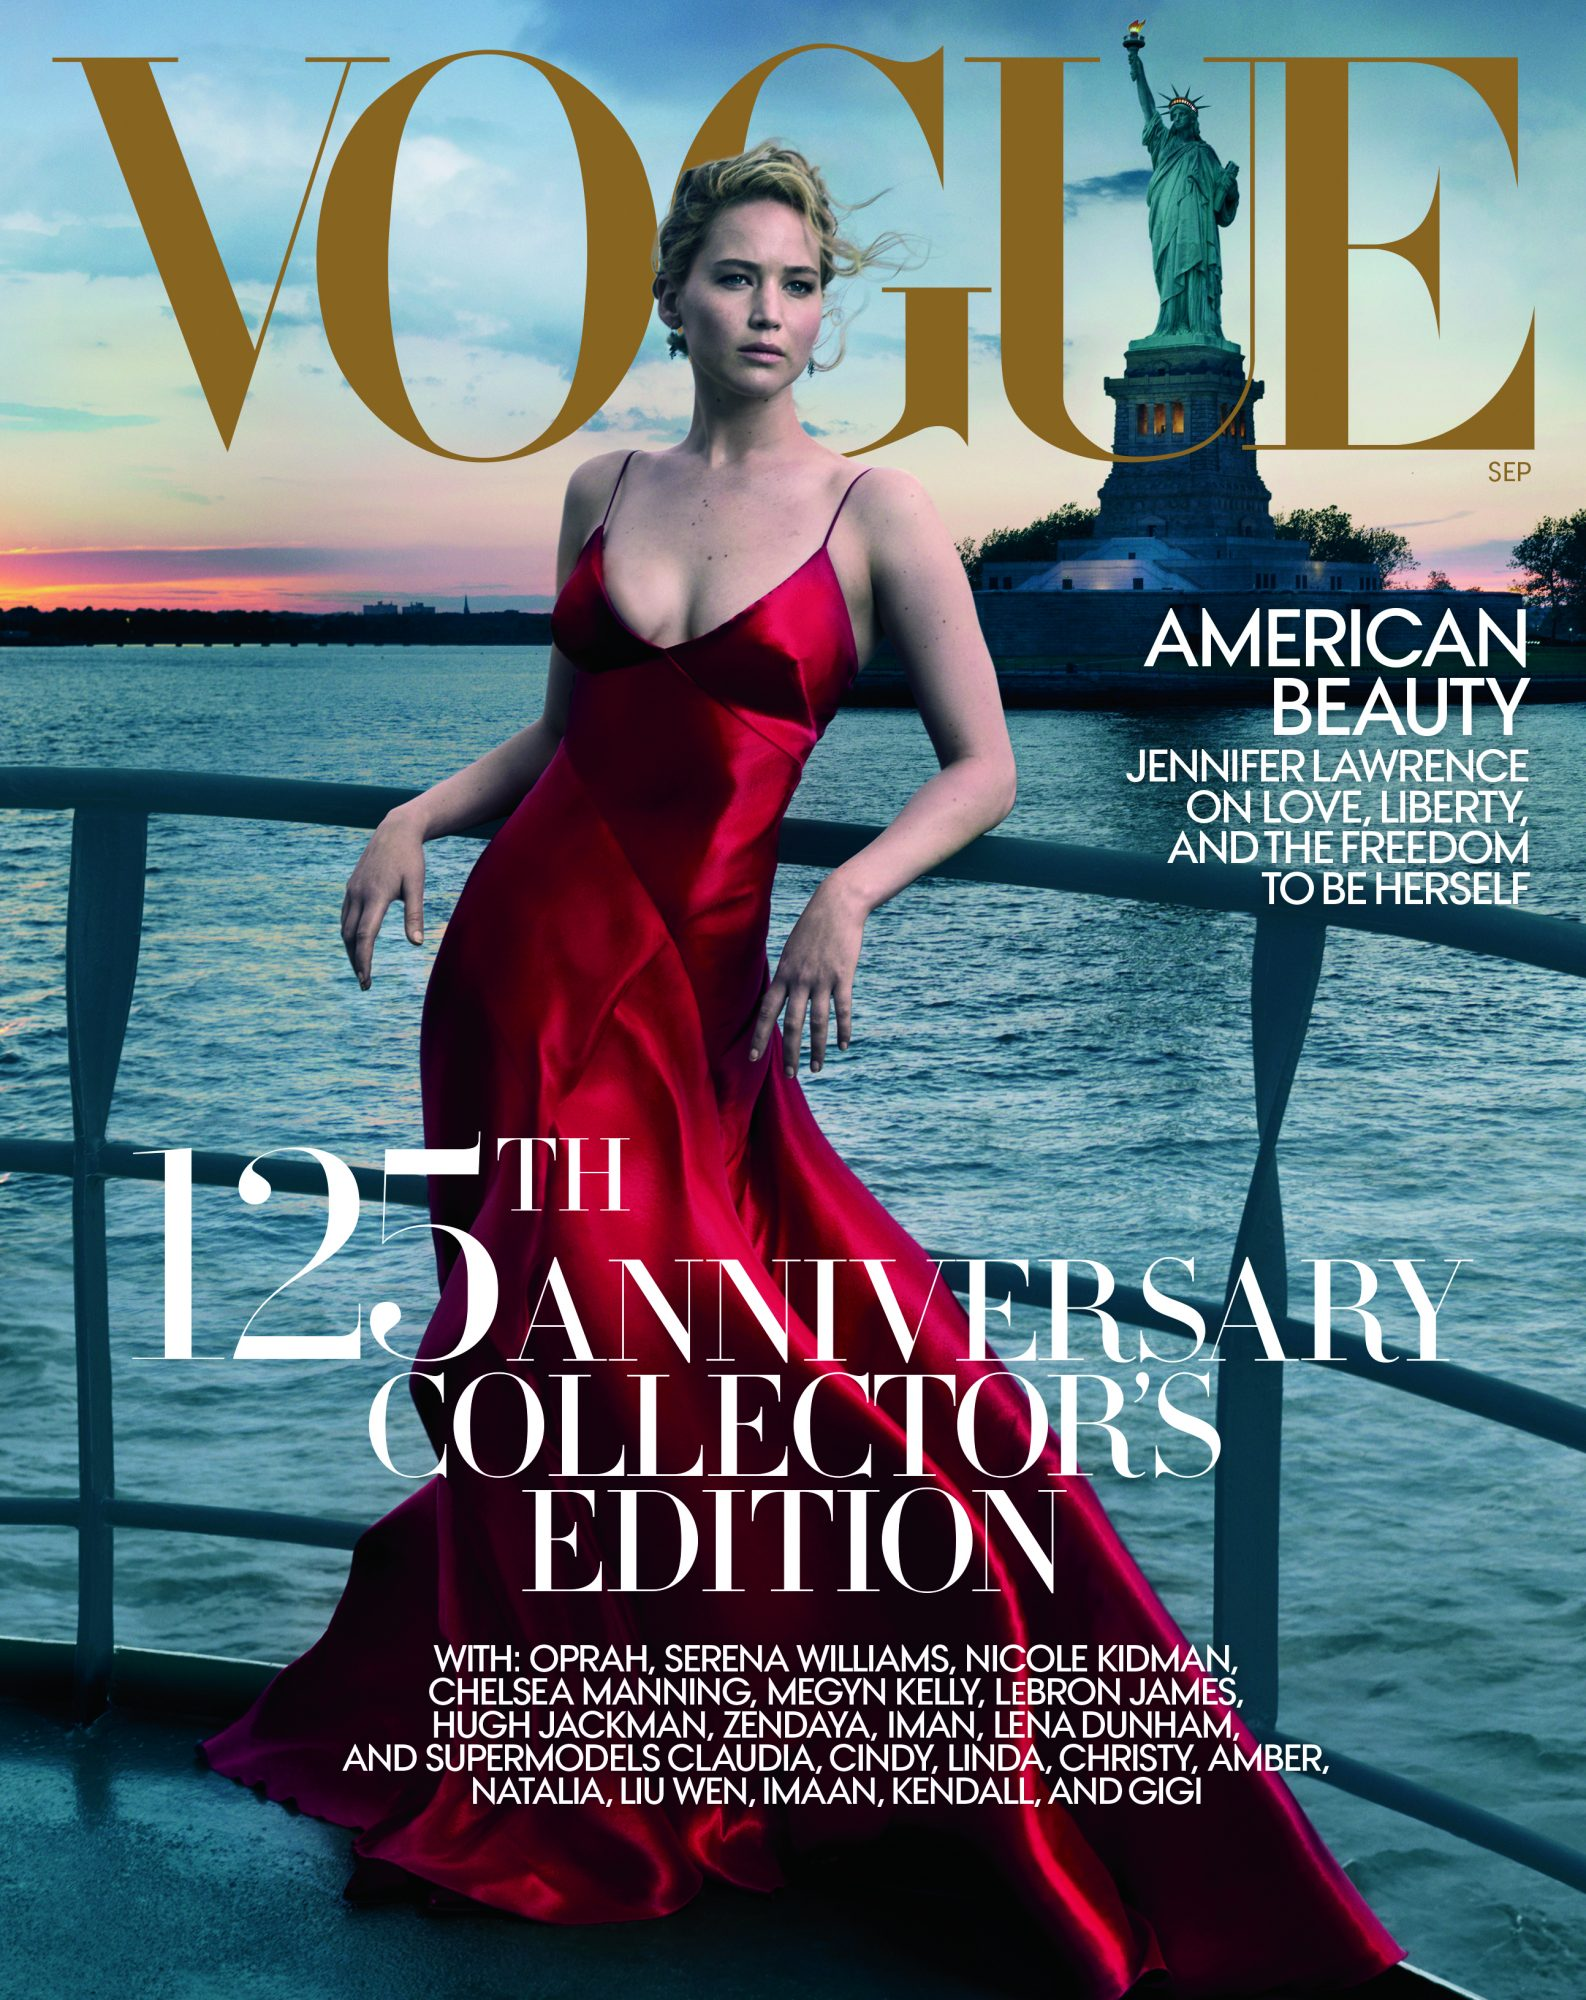 jennifer lawrence vogue cover annie leibovitz